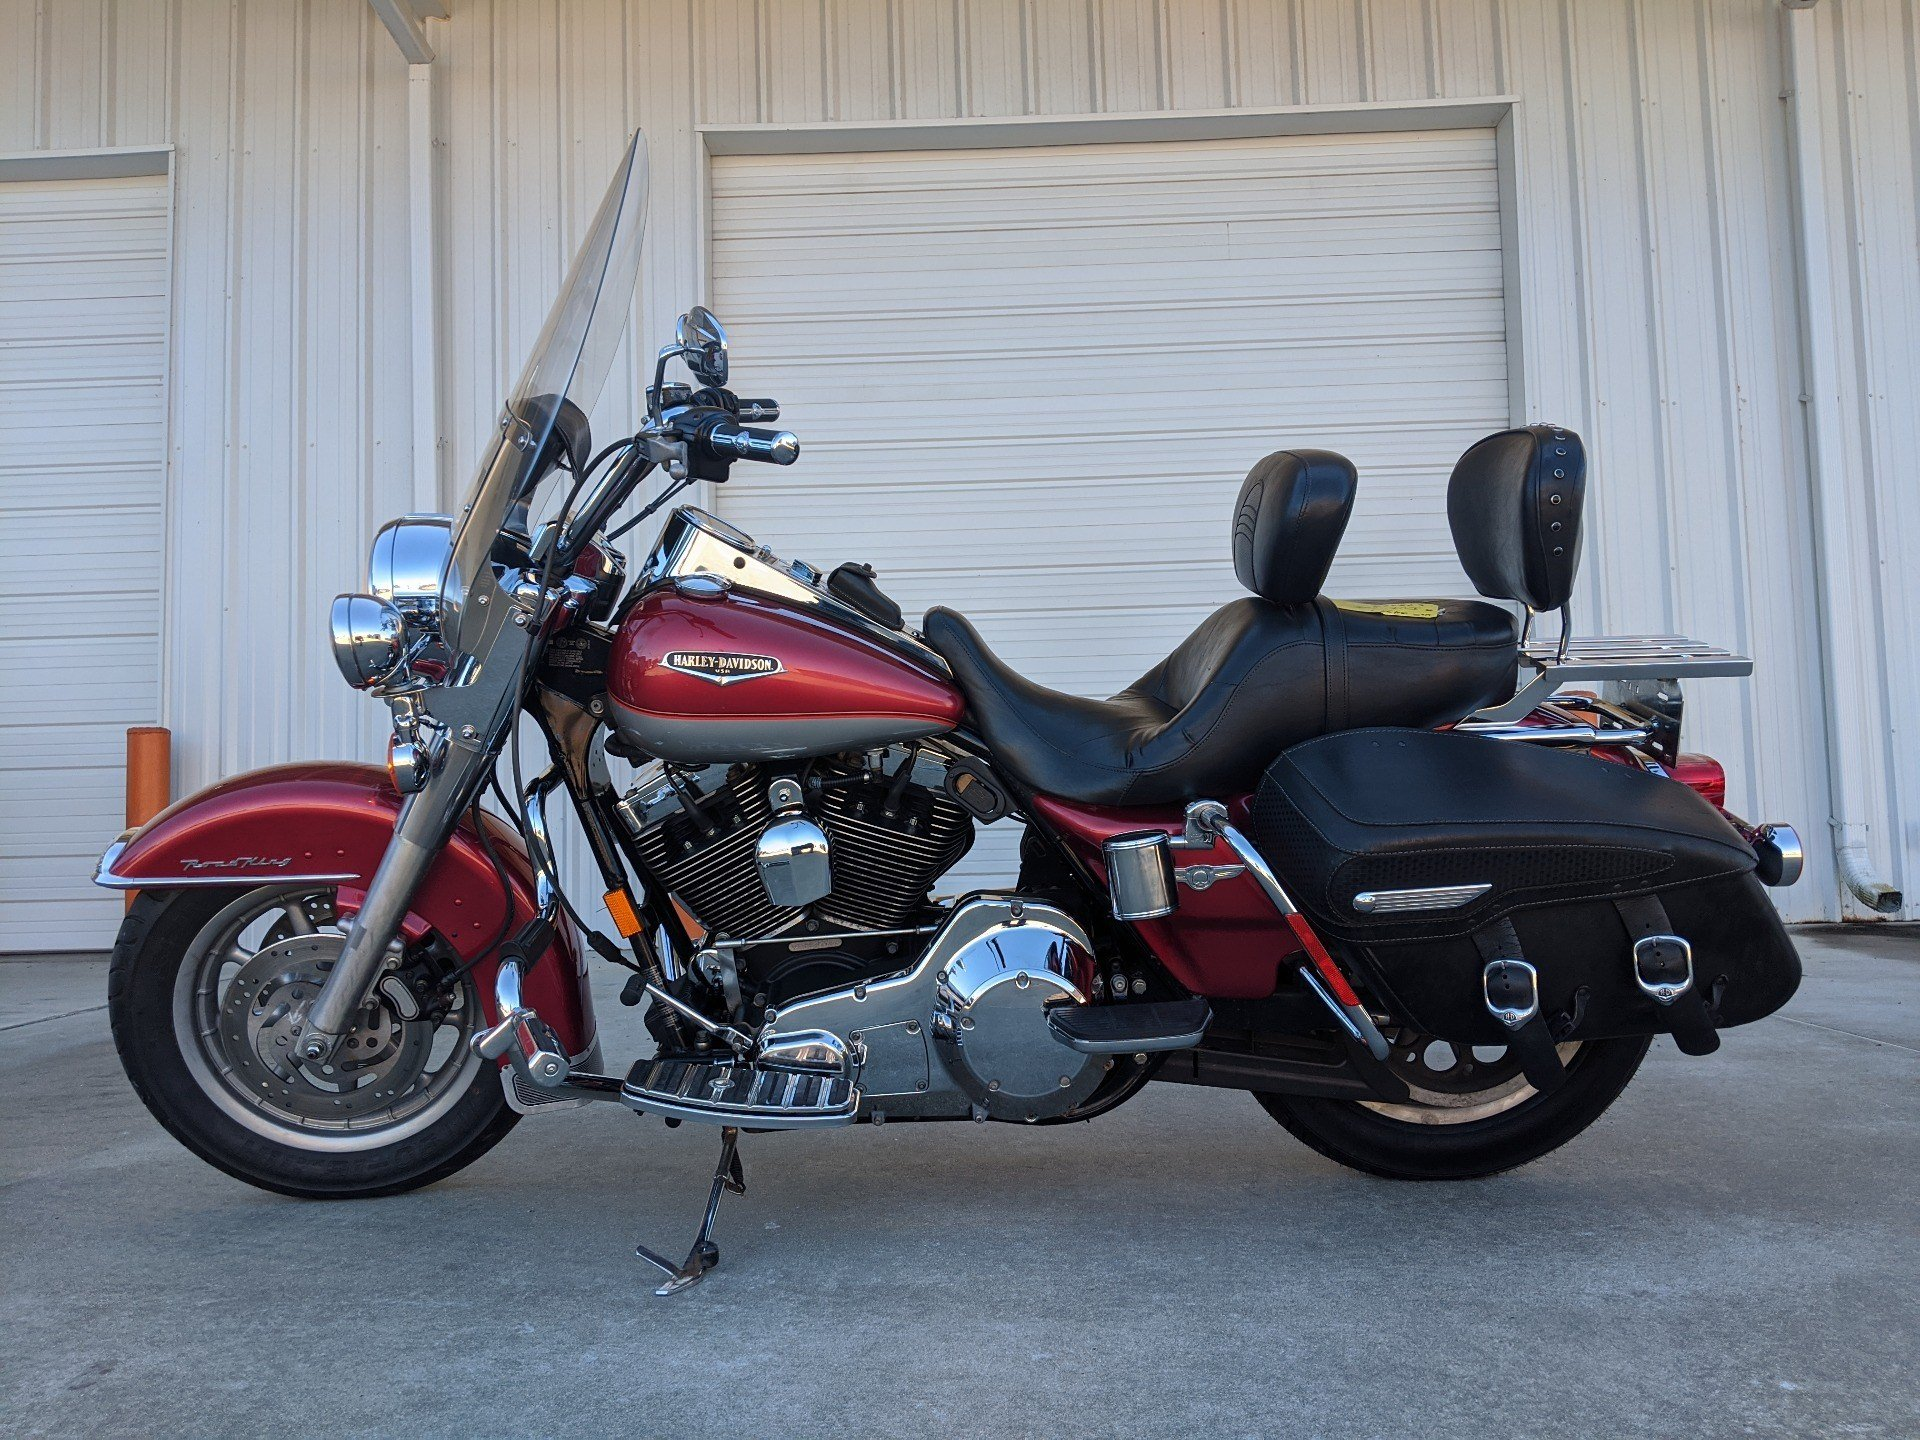 2005 Harley-Davidson FLHR/FLHRI Road King® in Monroe, Louisiana - Photo 2